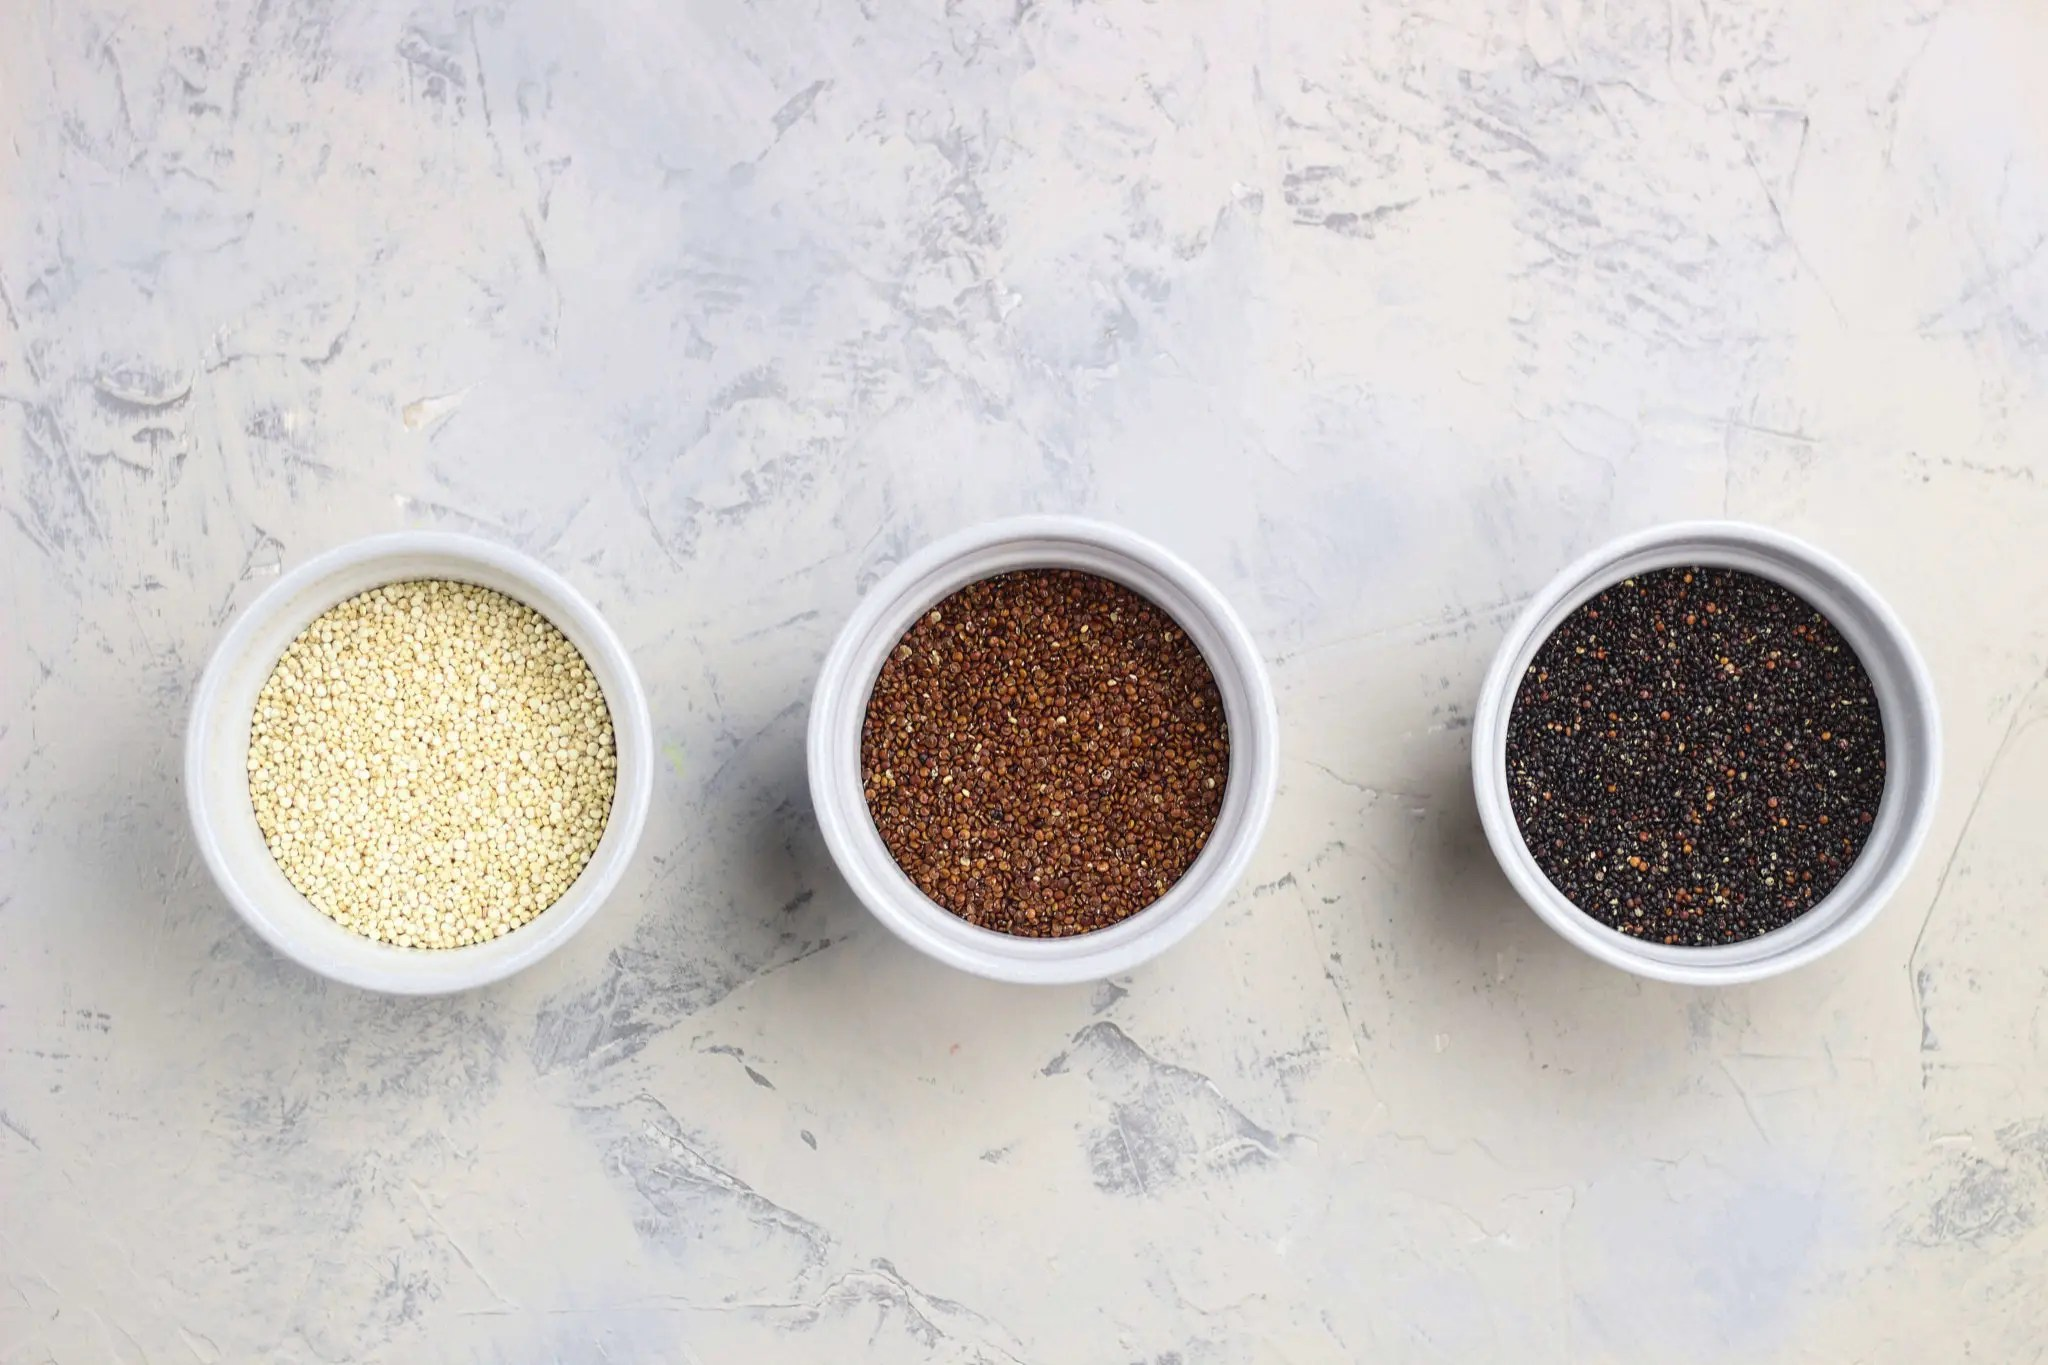 White quinoa, red quinoa, black quinoa, types of quinoa